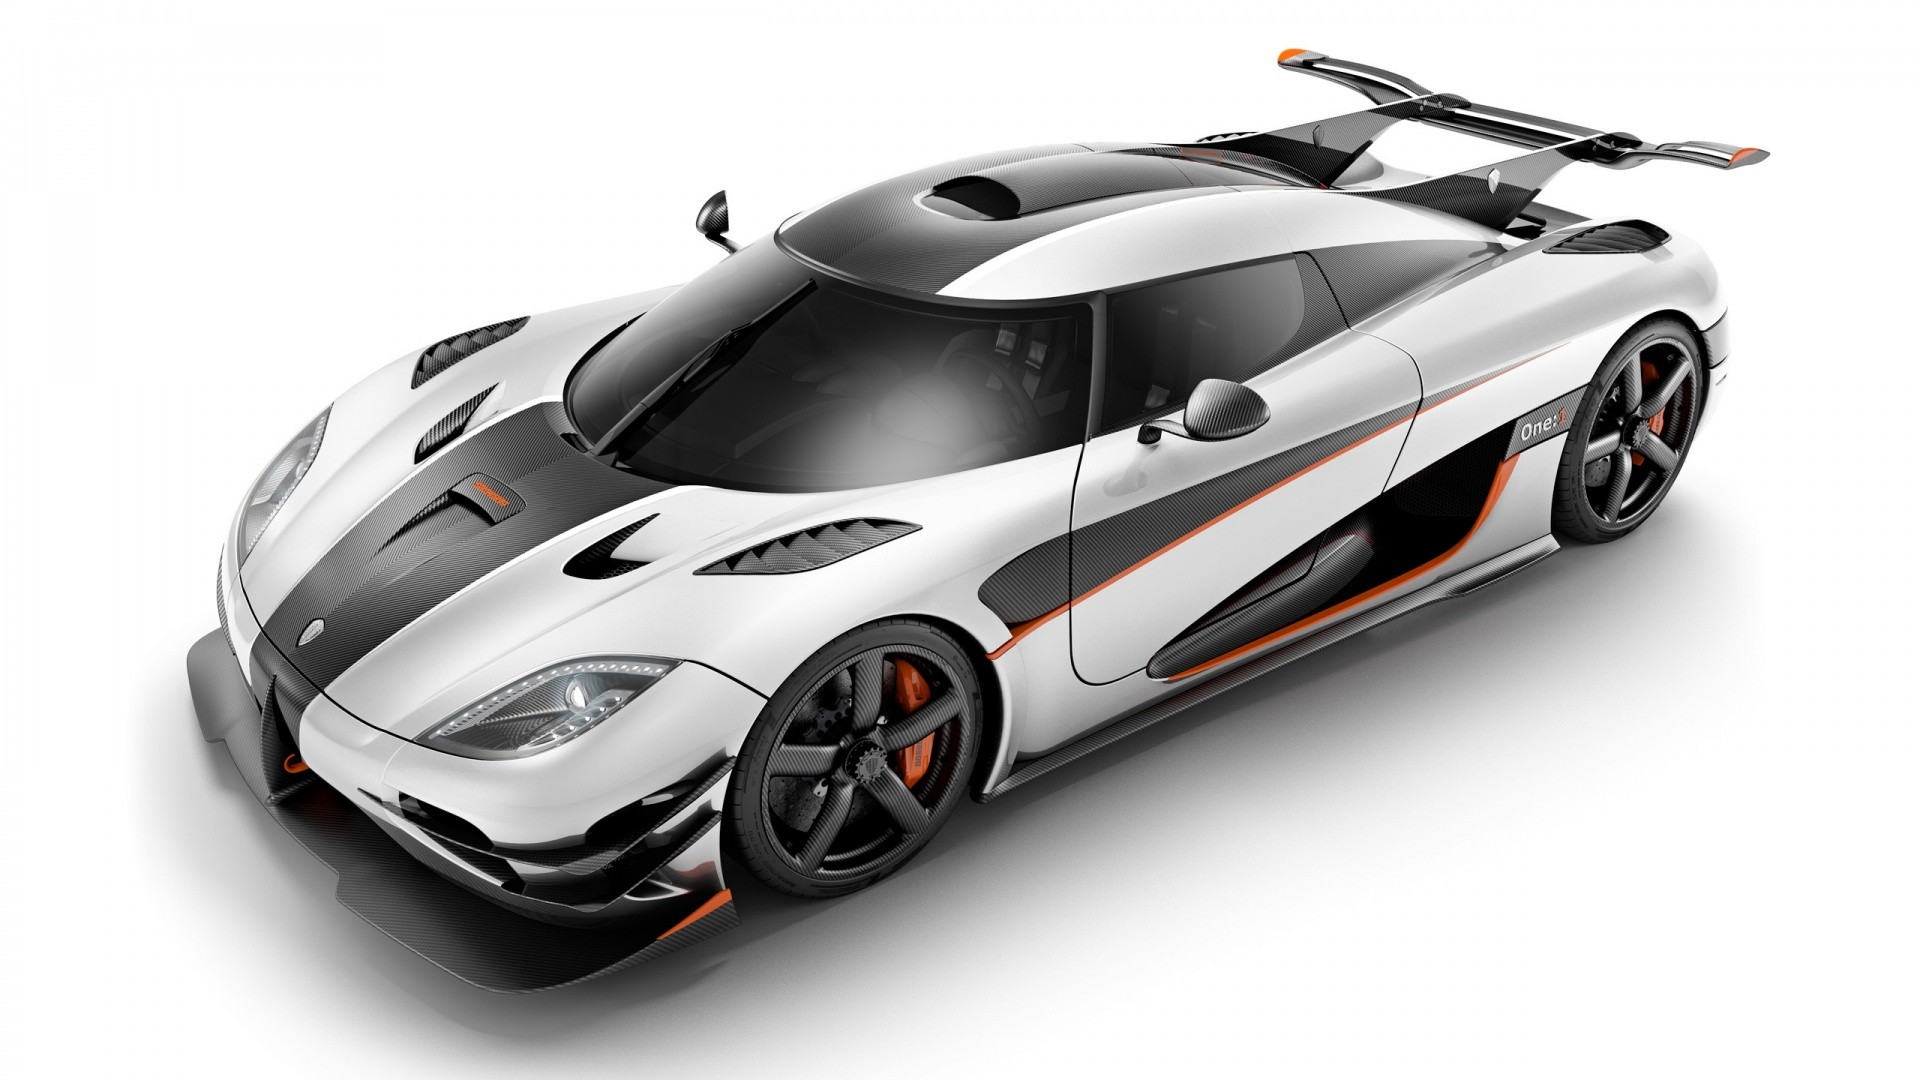 1920x1080 hd koenigsegg agera r background background photos windows wallpapers smart  phone background photos download free images desktop backgrounds colourful  4k ...